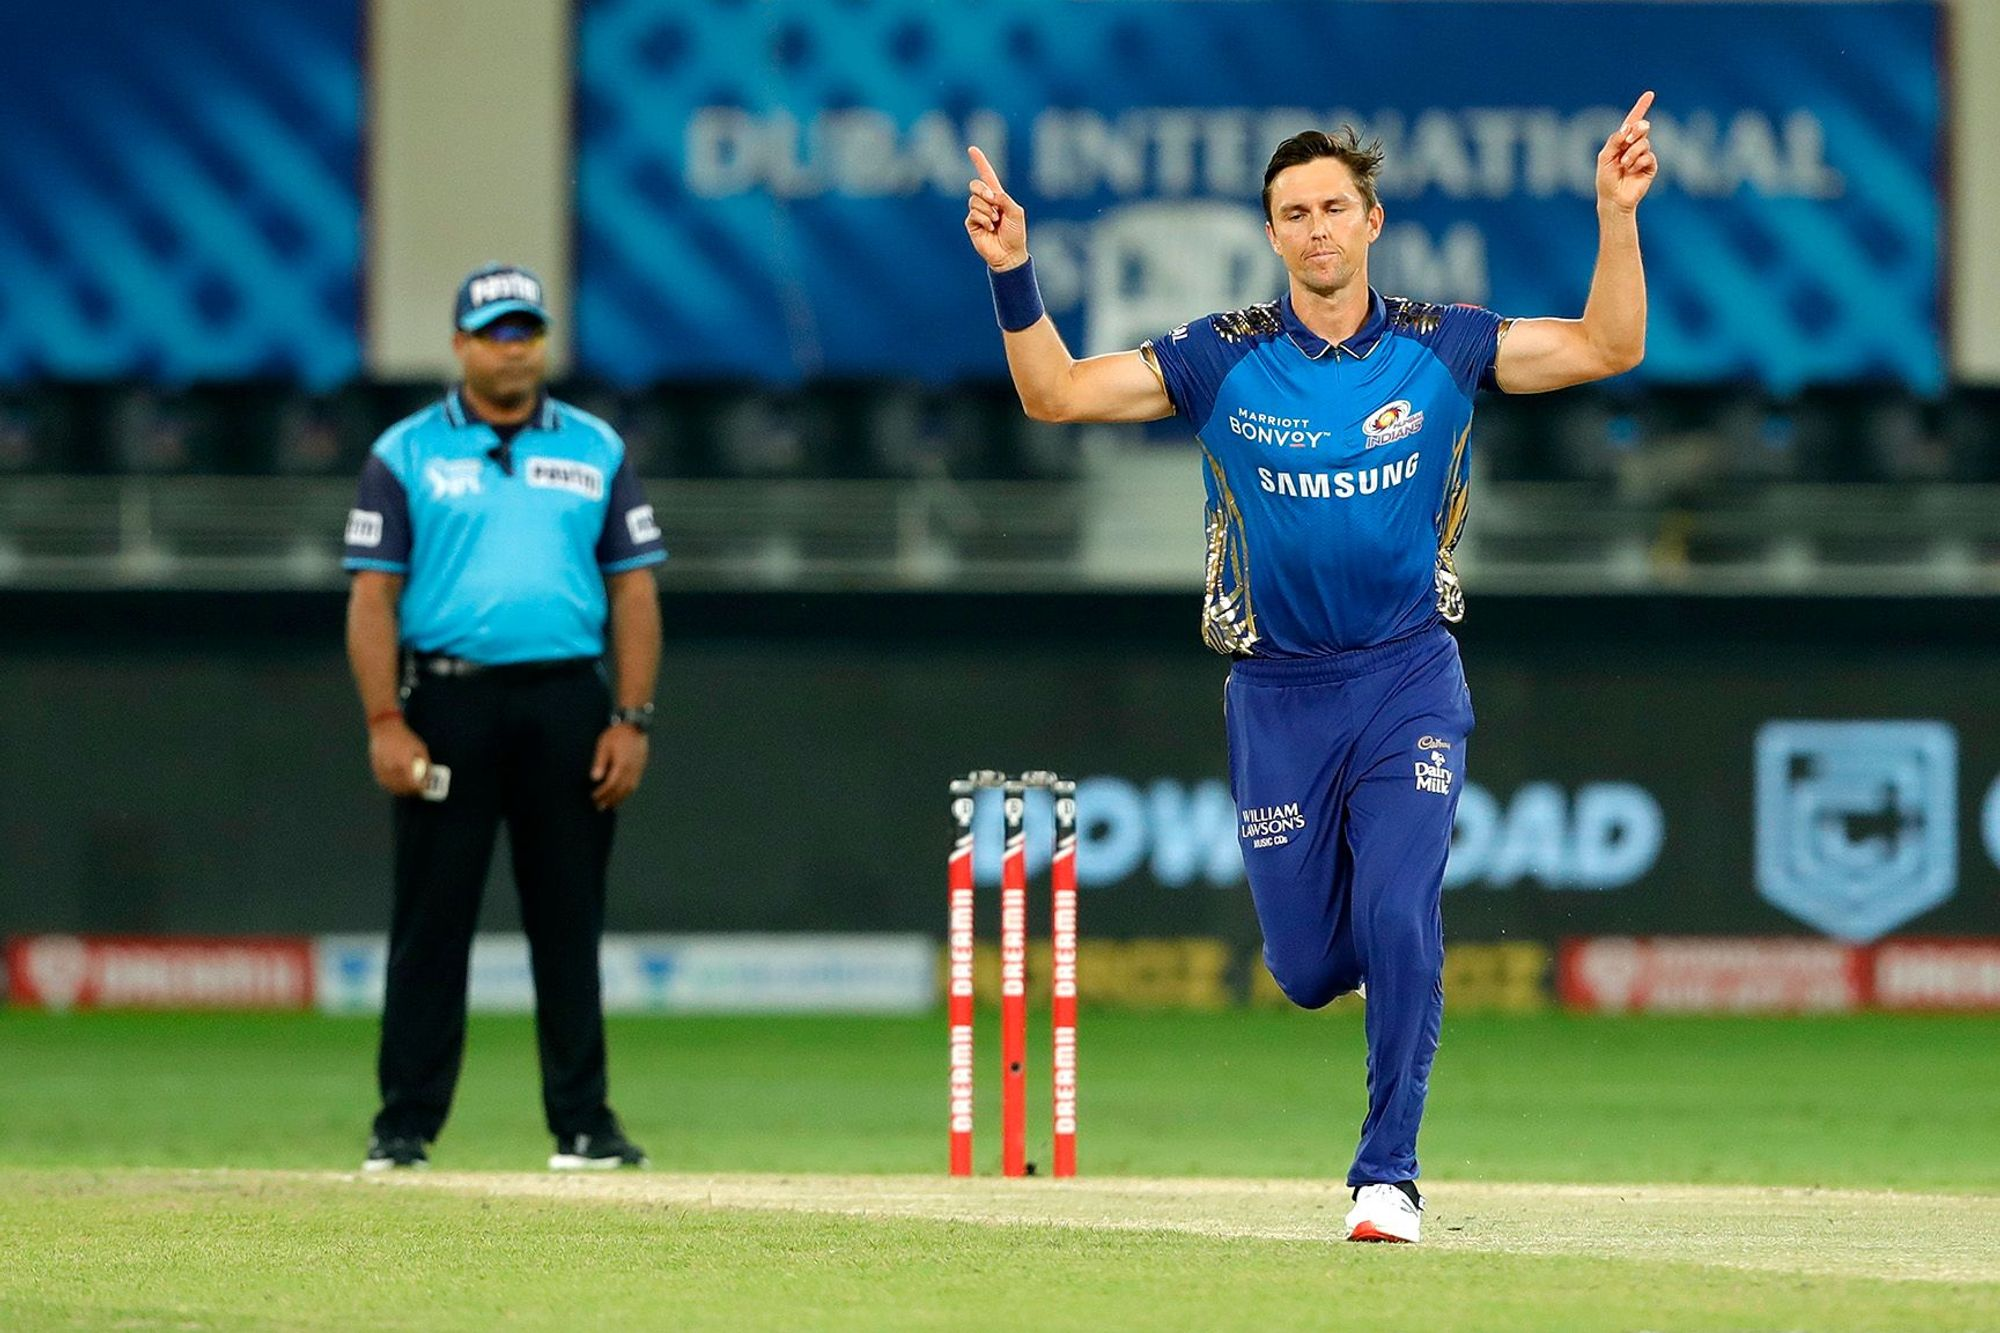 Trent Boult will be crucial in the IPL 2020 Final for the Mumbai Indians | BCCI/IPL